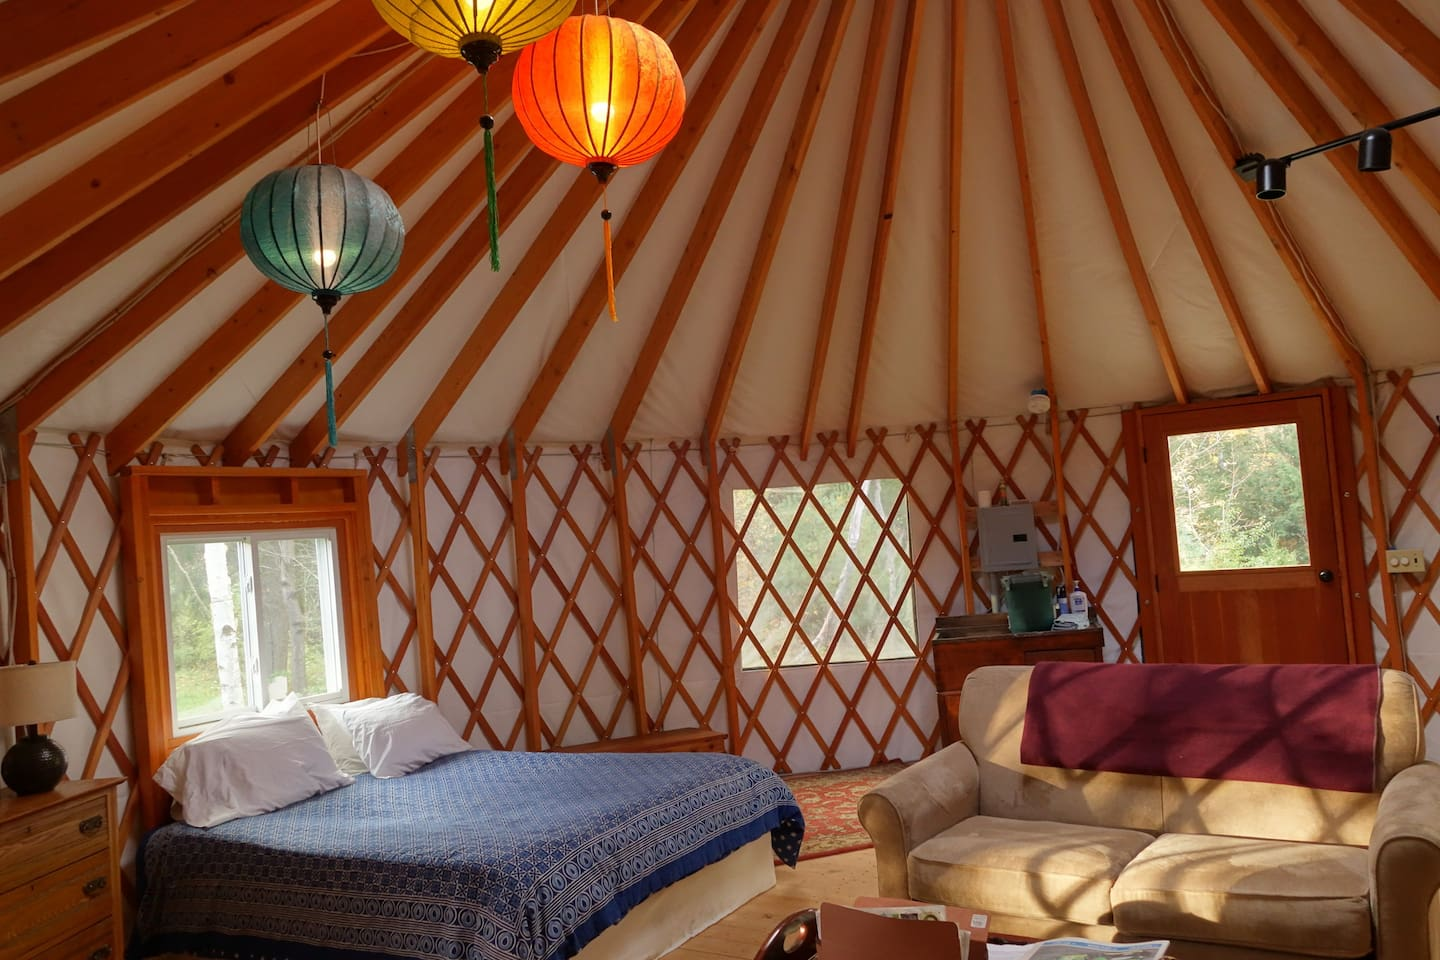 The sun-drenched, spacious yurt is a perfect retreat. Connected to nature yet protected from the elements.